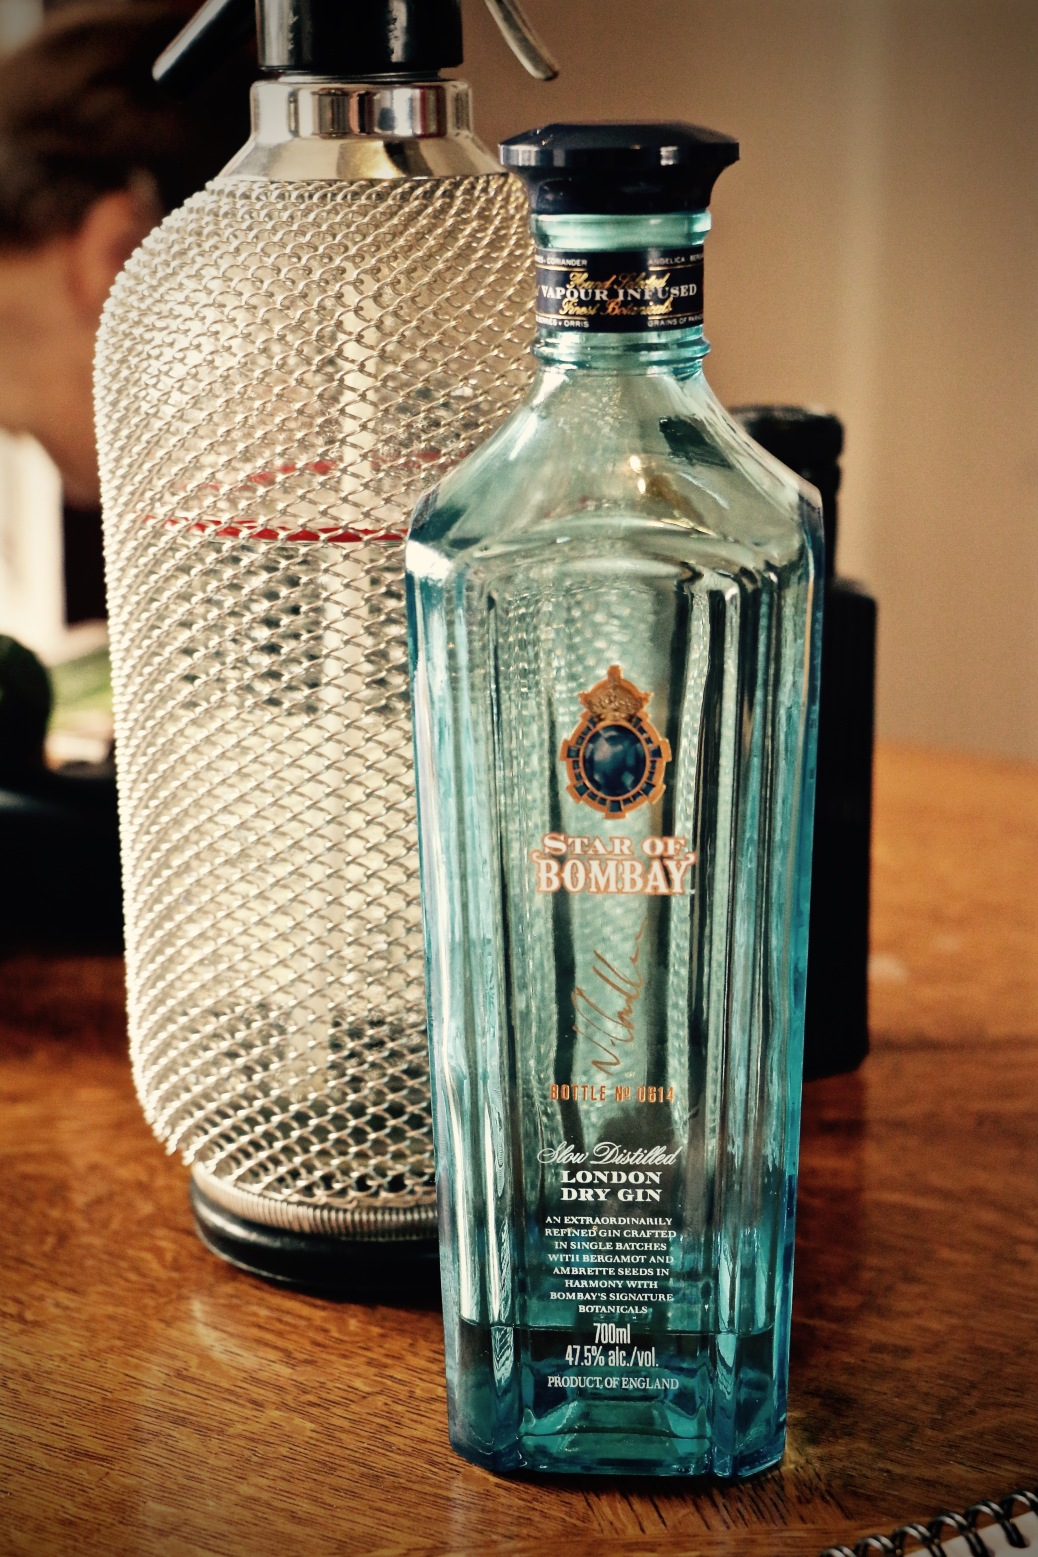 Star of Bombay bottle